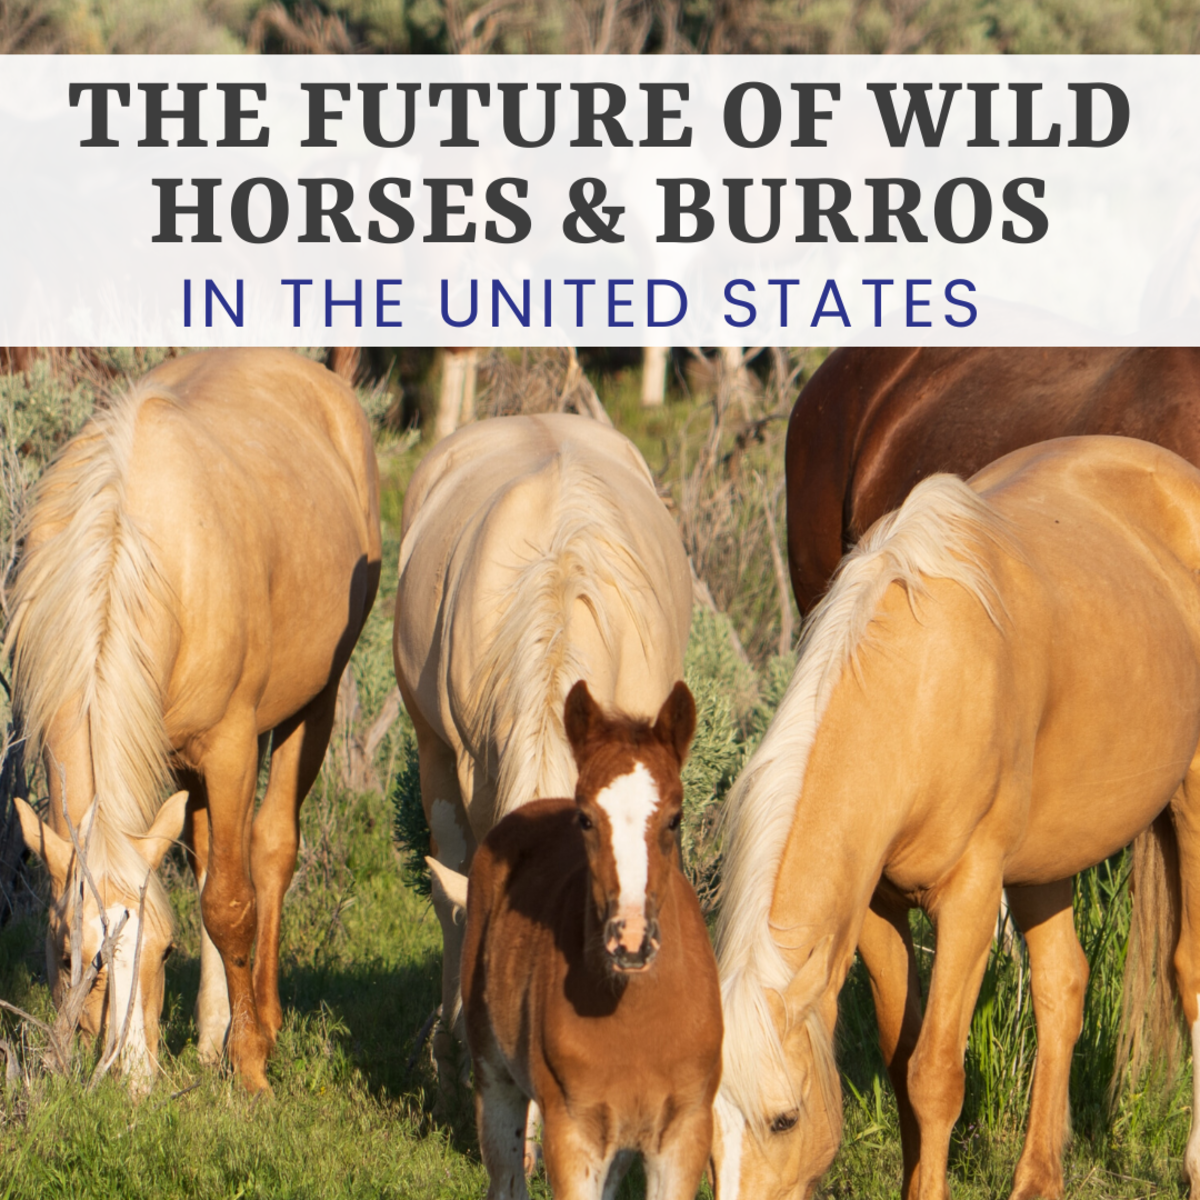 The Wild Horses and Burros of the United States of America are threatened with removal and almost certain death.